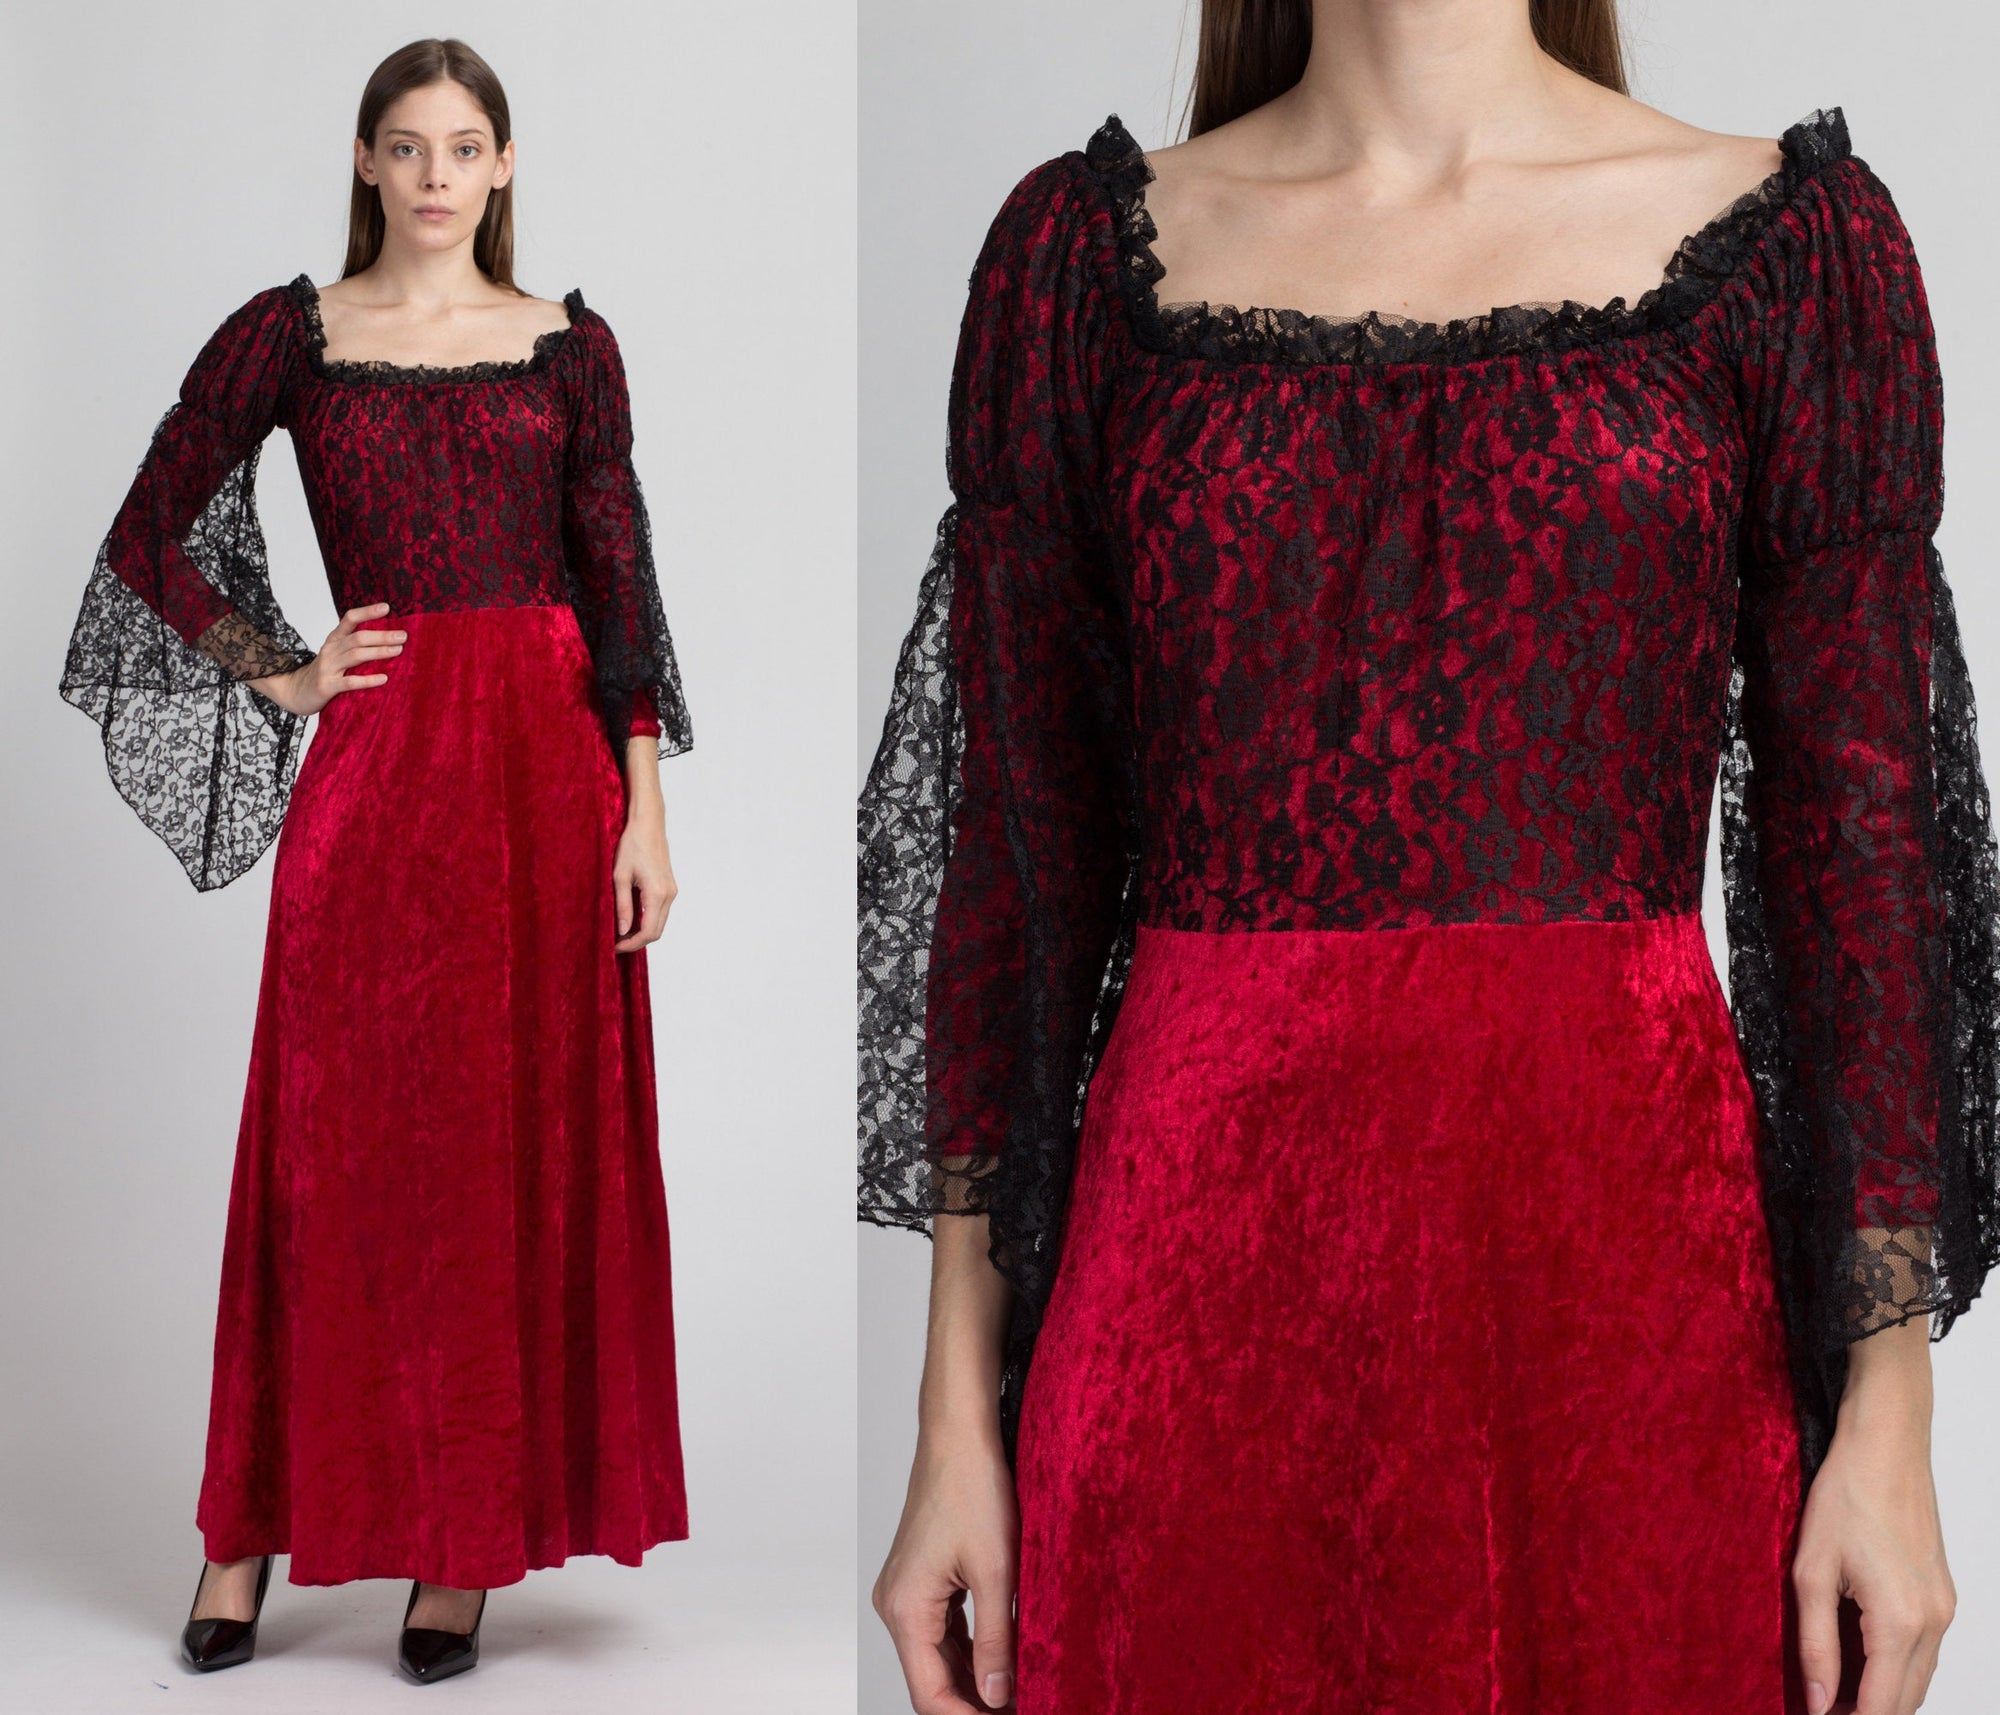 Gothic Victorian Red Velvet & Black Lace Maxi Dress - Small